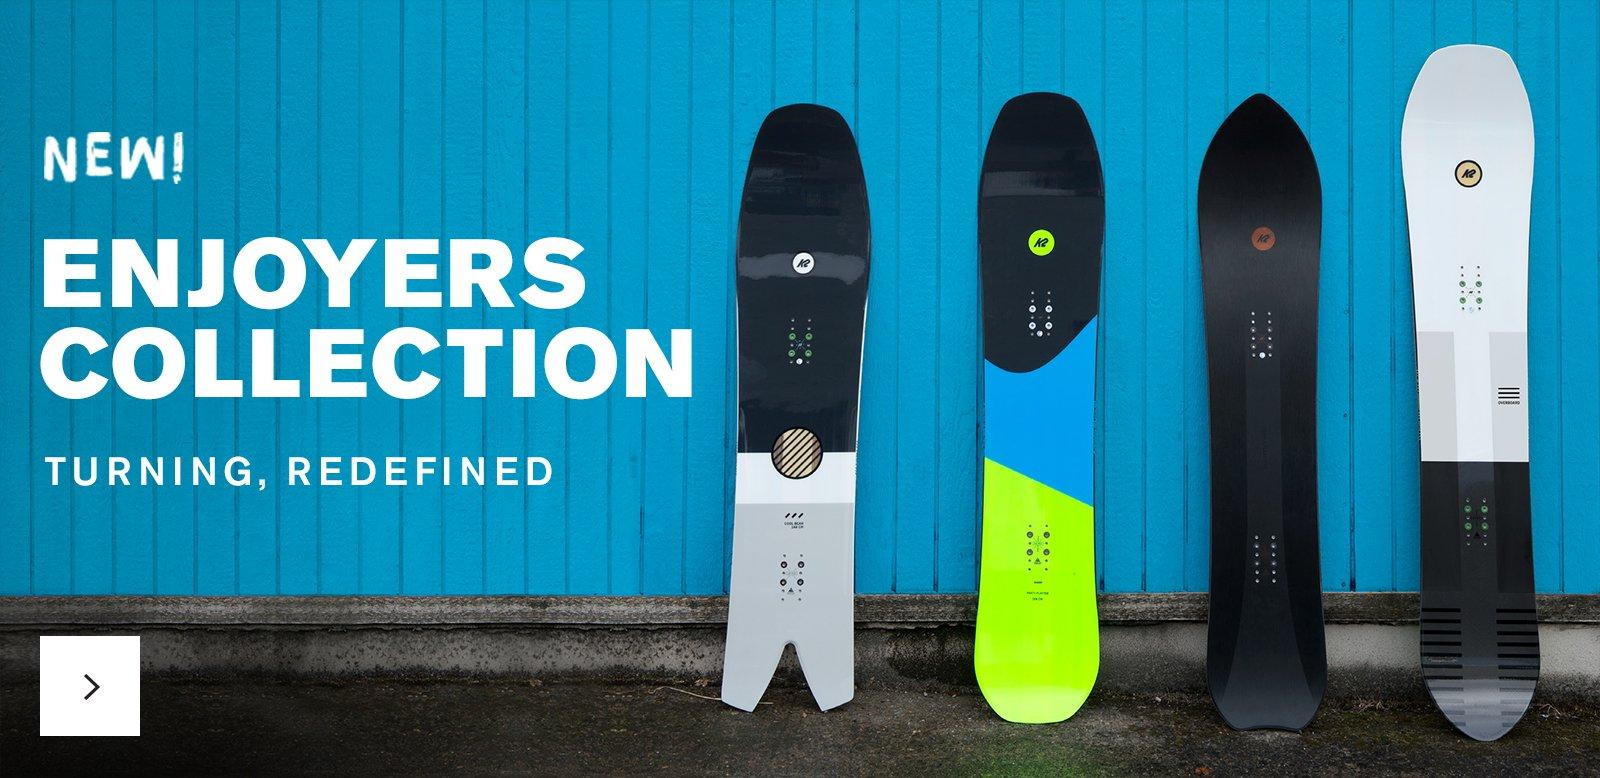 View the new Enjoyers Collection